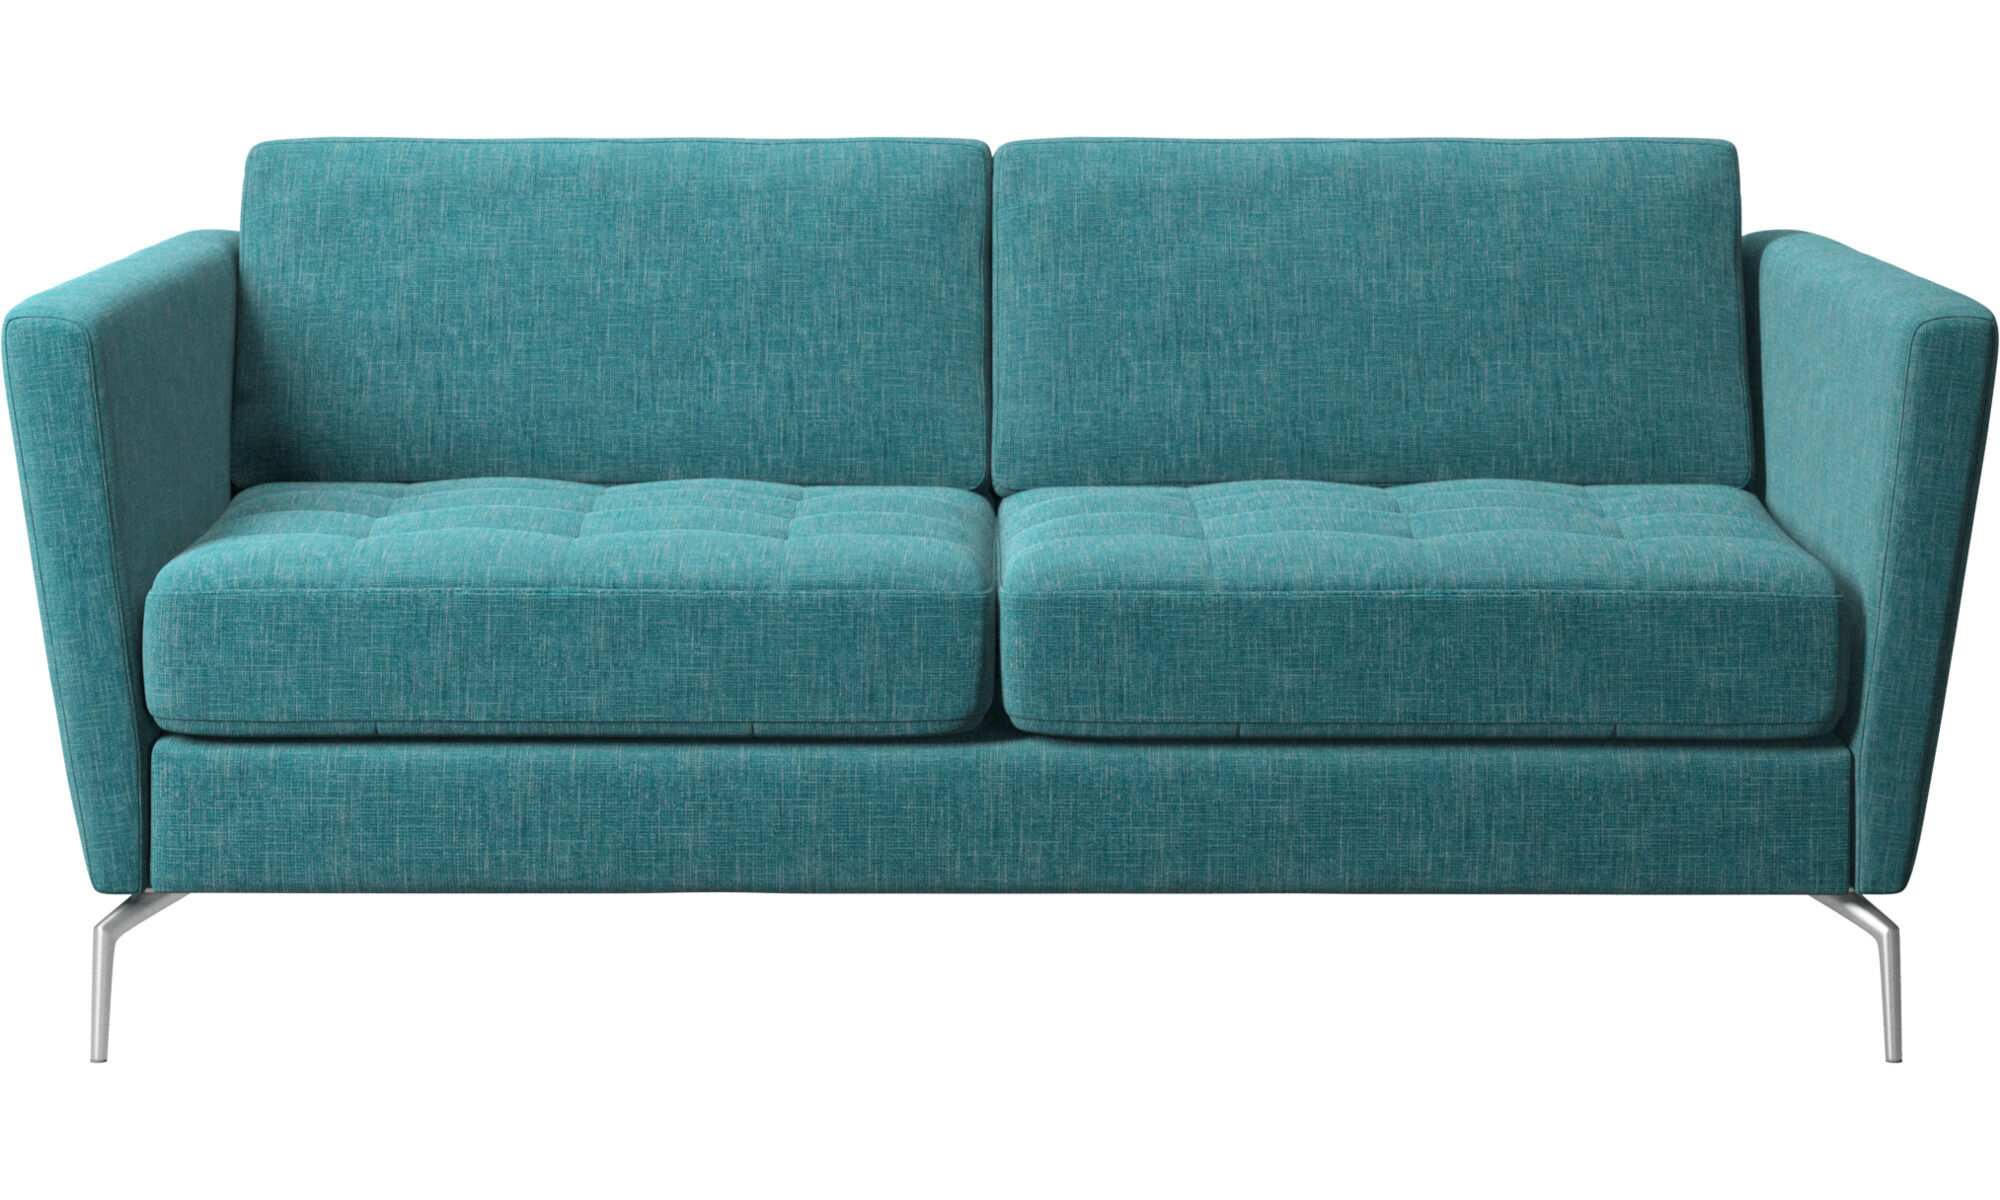 2 Seater Sofas   Osaka Sofa, Tufted Seat   Blue   Fabric ...